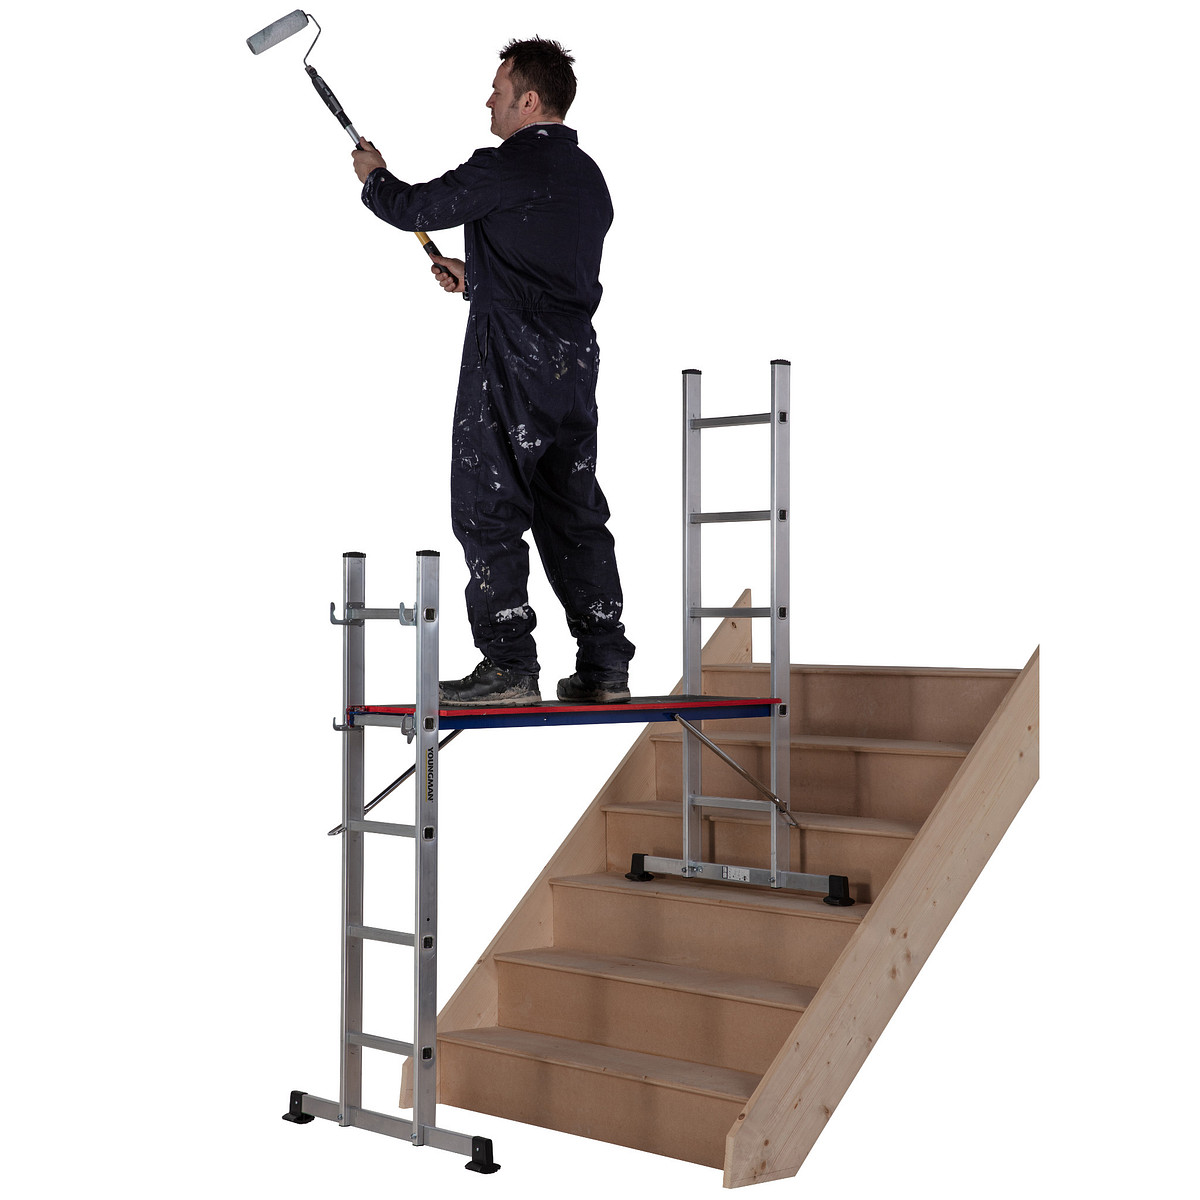 5101518 Combination Ladders Youngman Ladders And Access Equipment